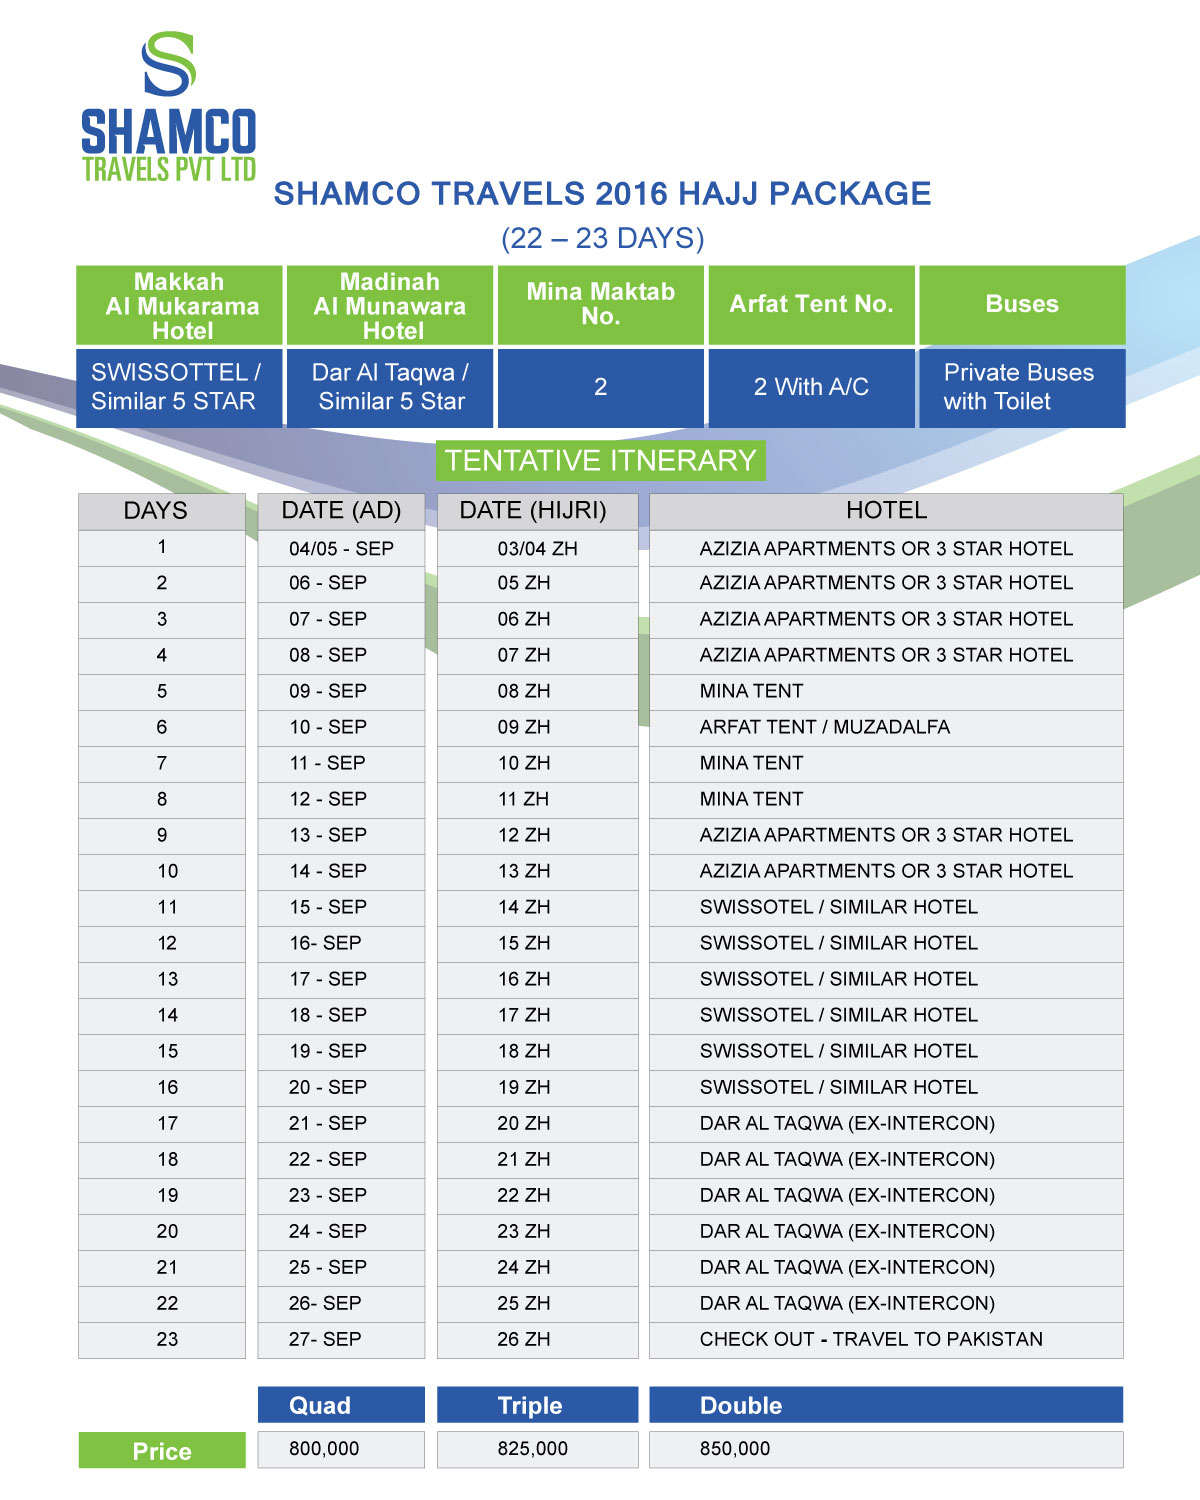 hajj_package_2016